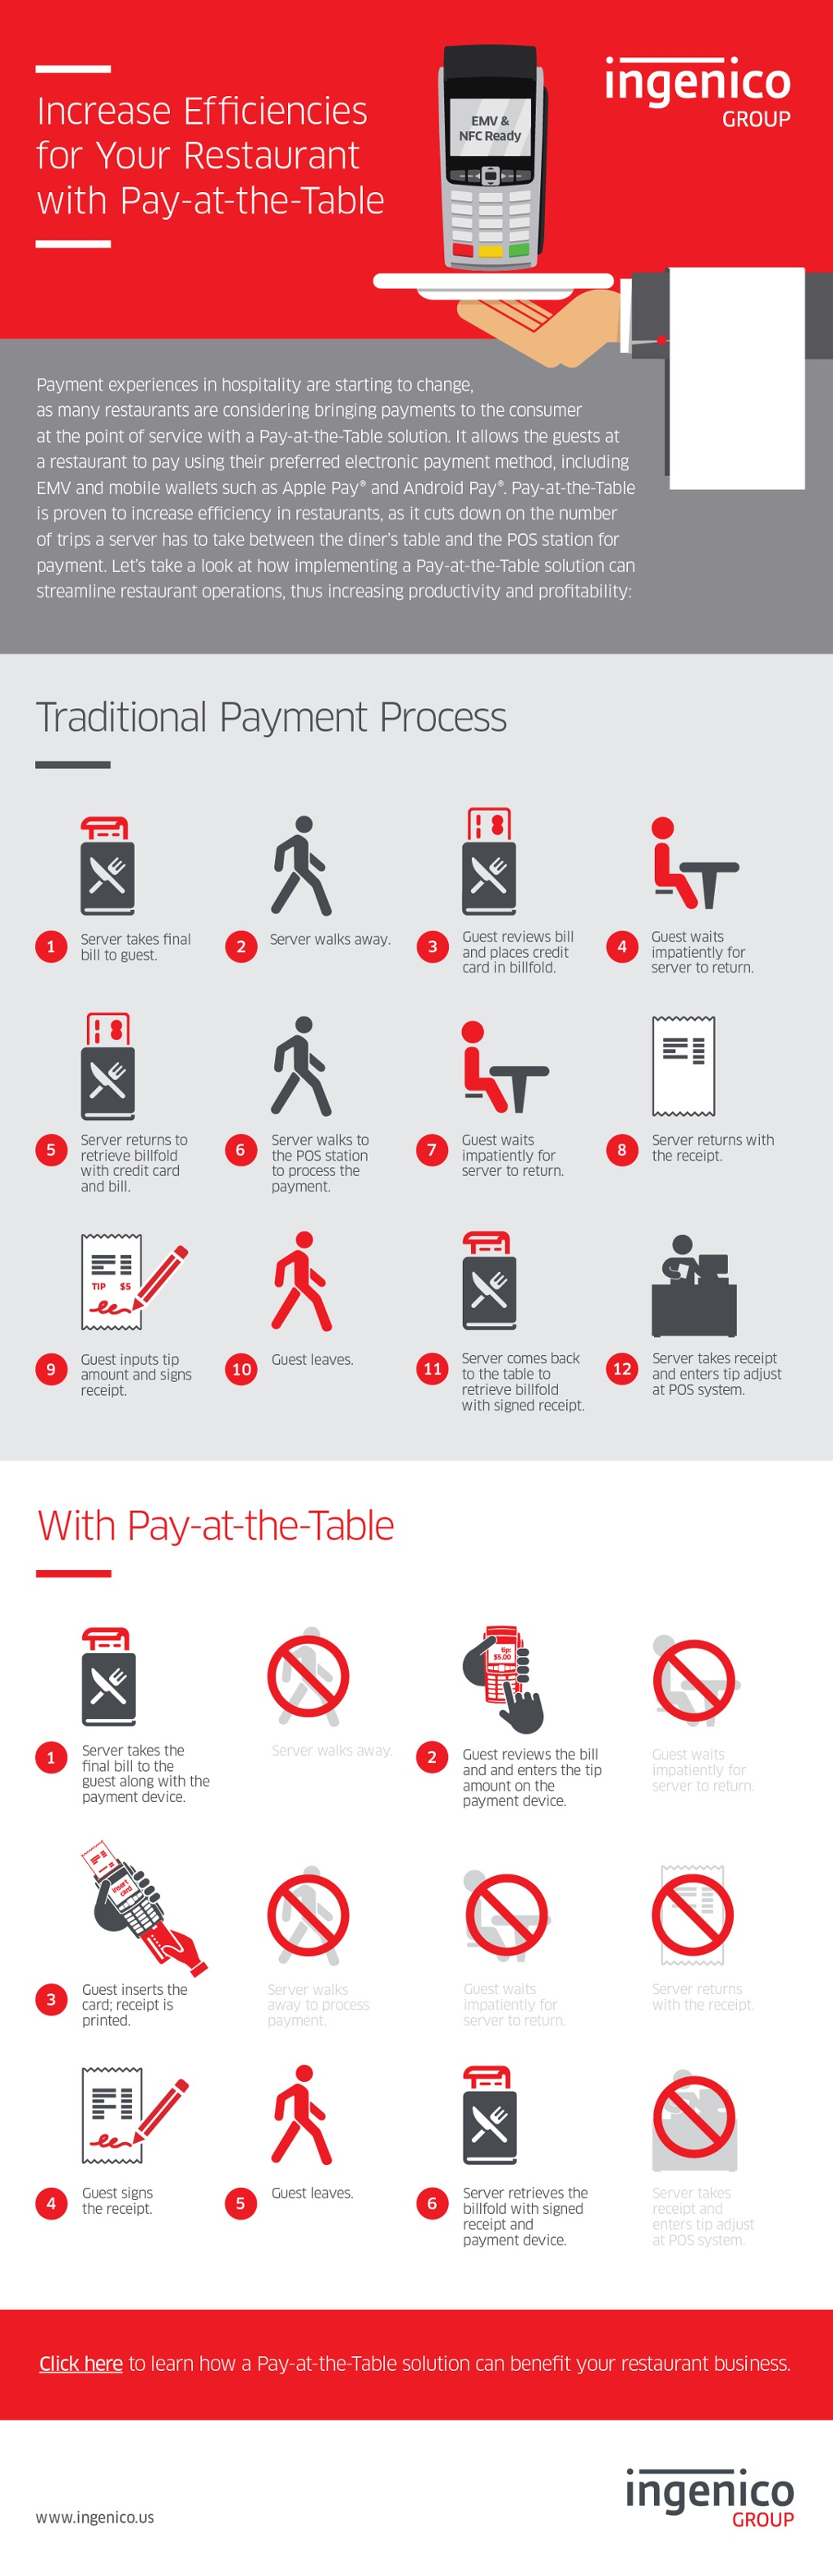 PayattheTable Saves Time For Restaurants POS Portal - Pay at the table restaurant